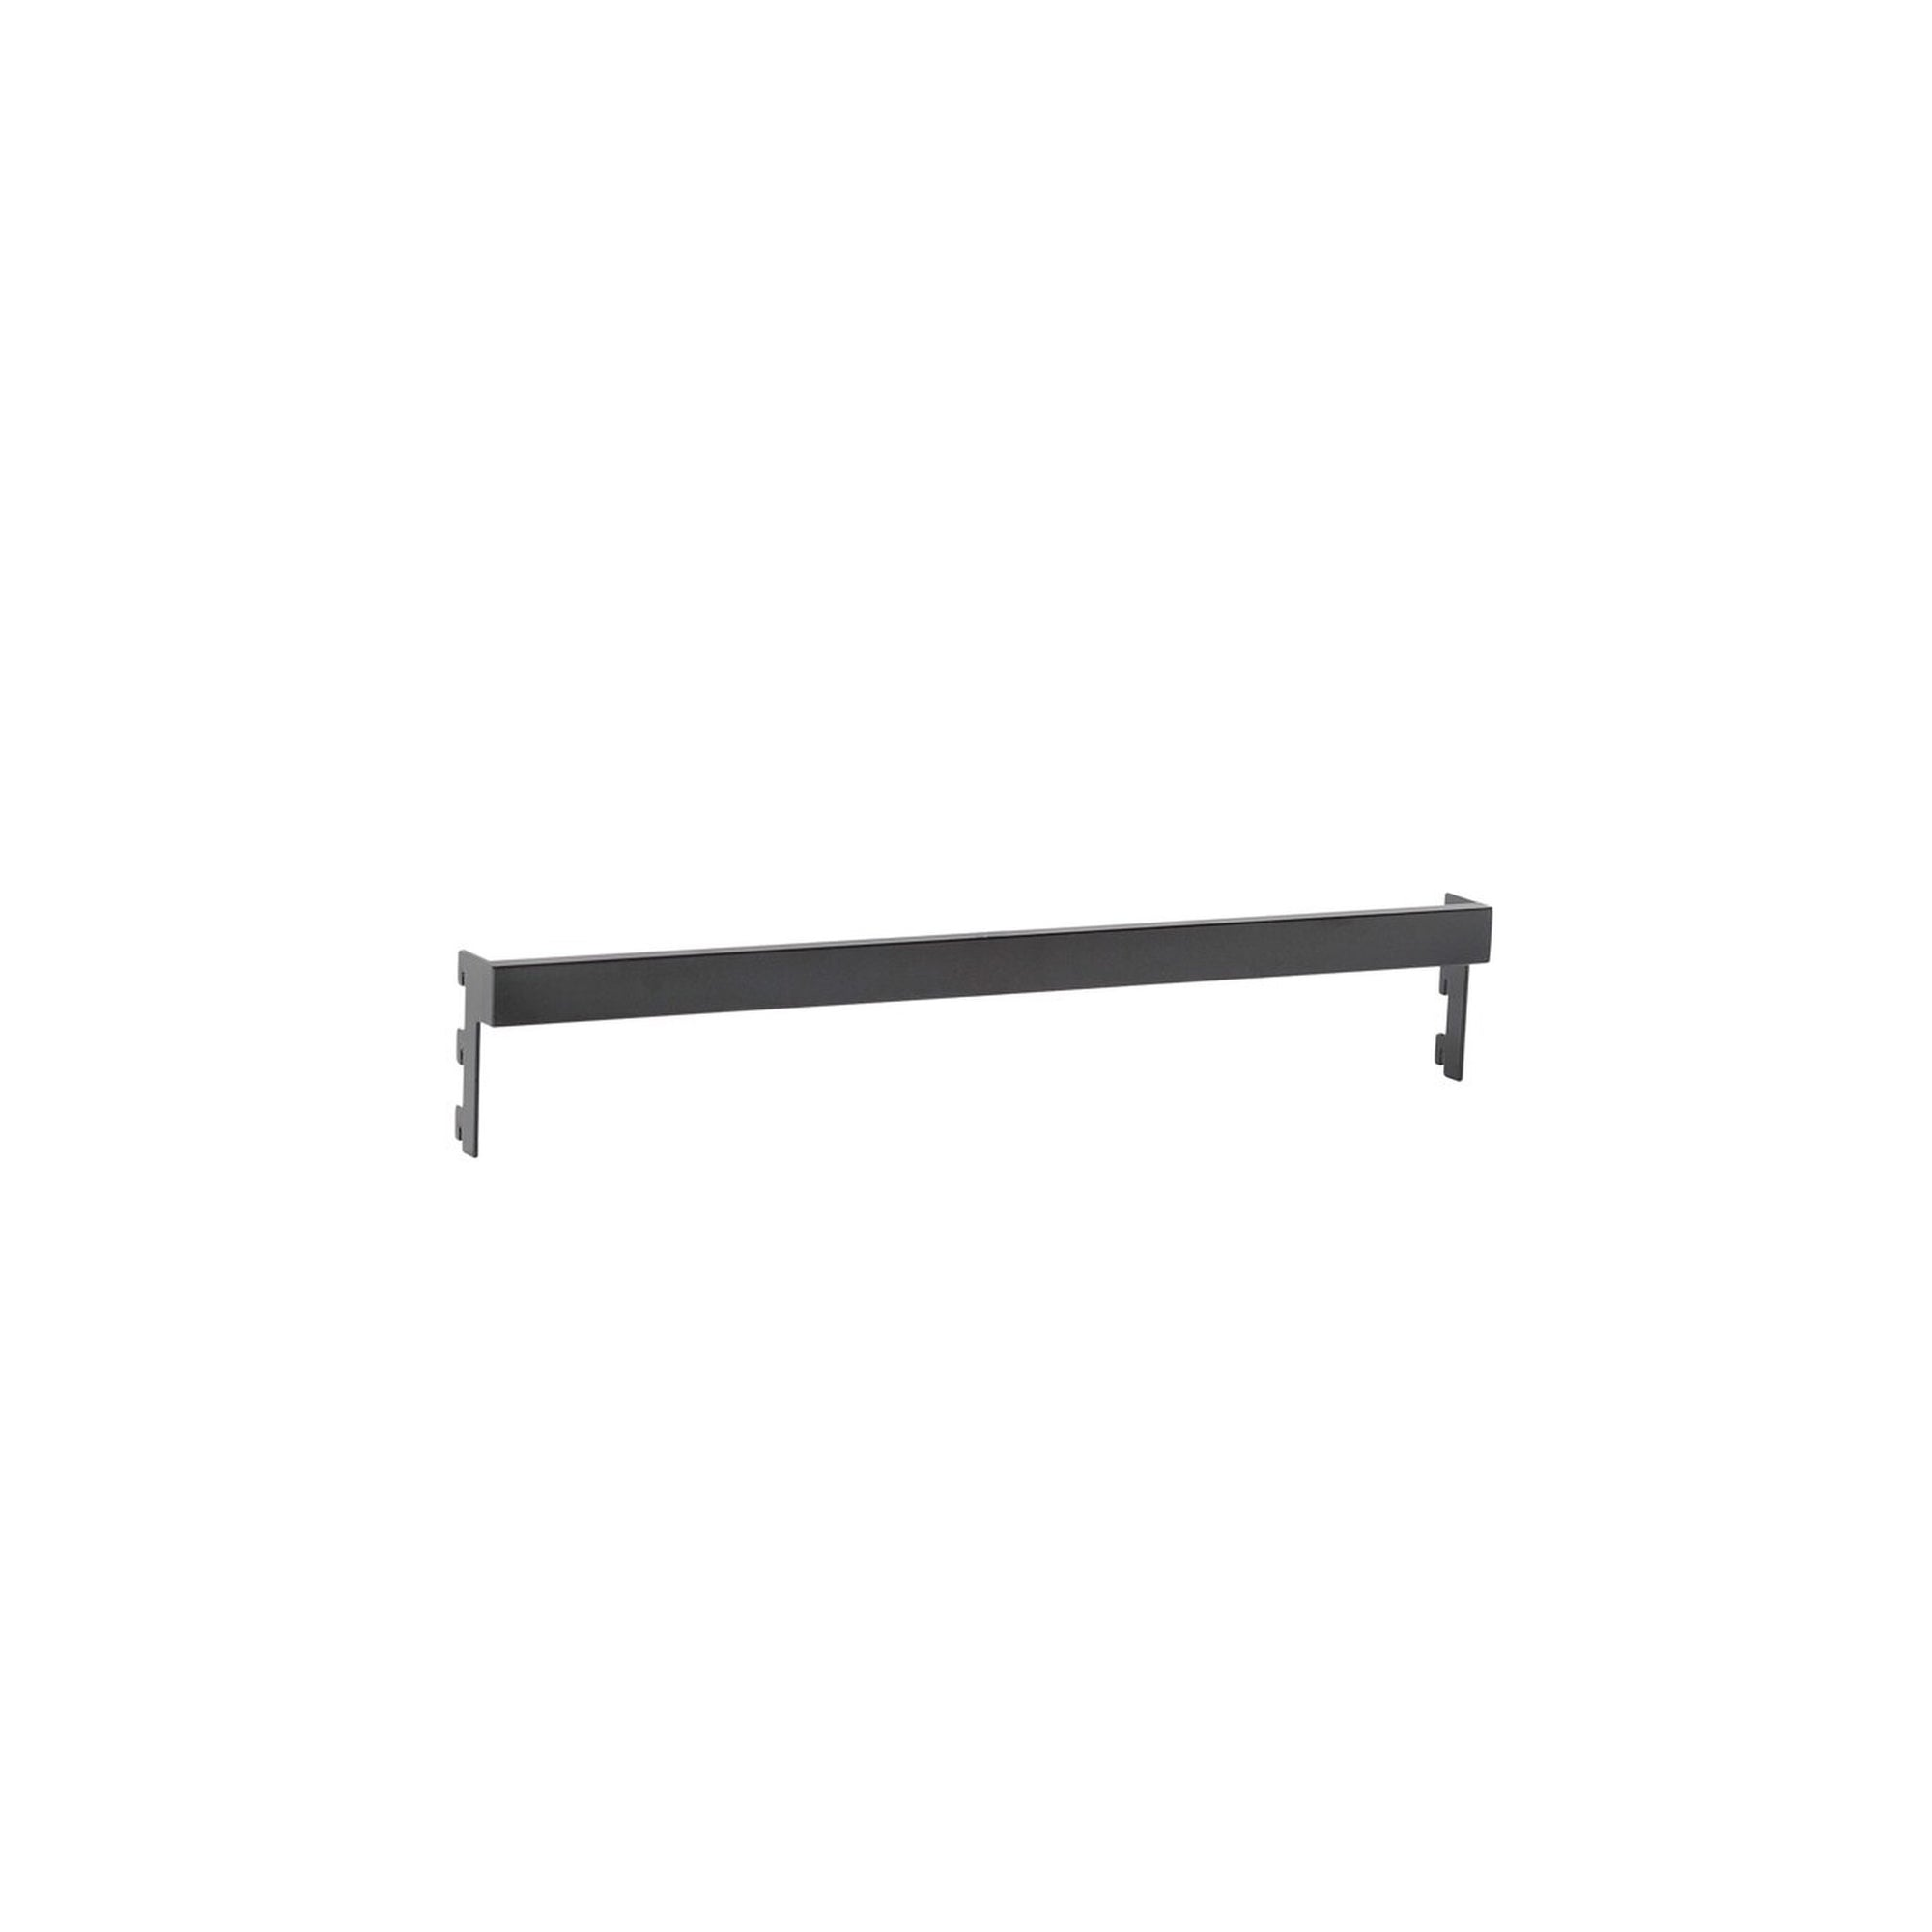 MAXe 600mm Backrail - 600mm W x 32mm H x 12.7mm D (E4006)